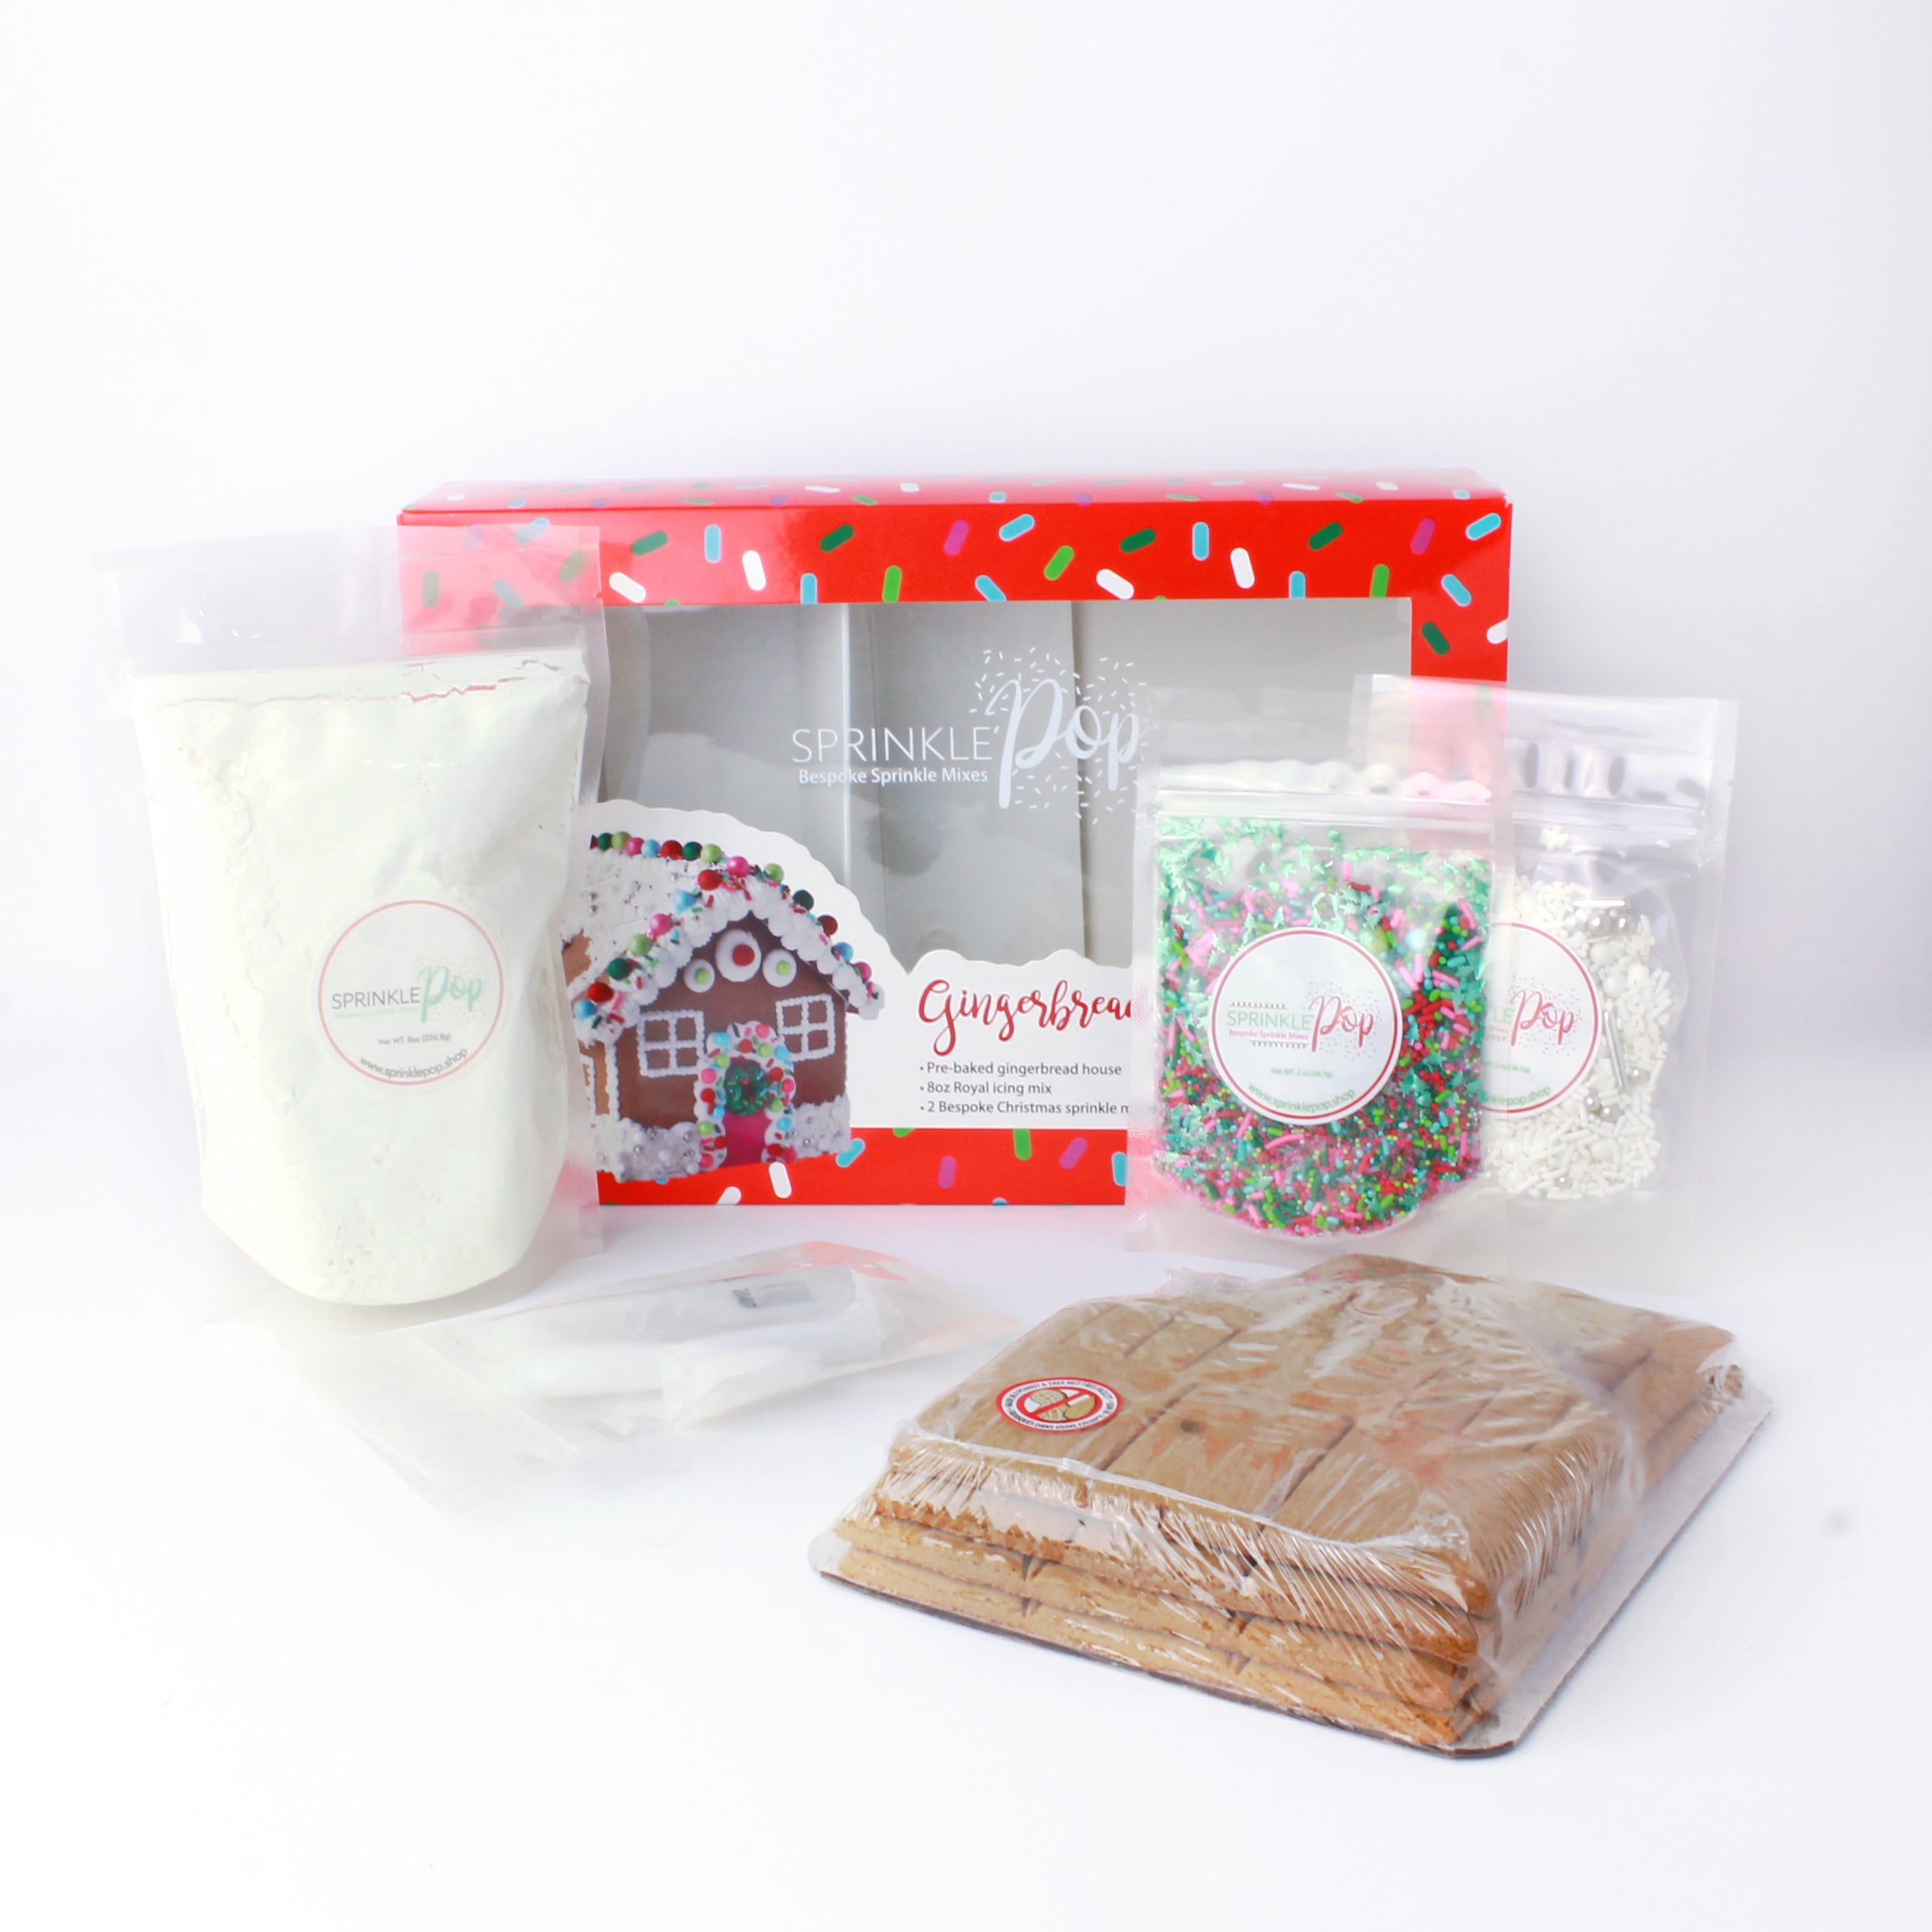 Sprinkle Gingerbread House Kit